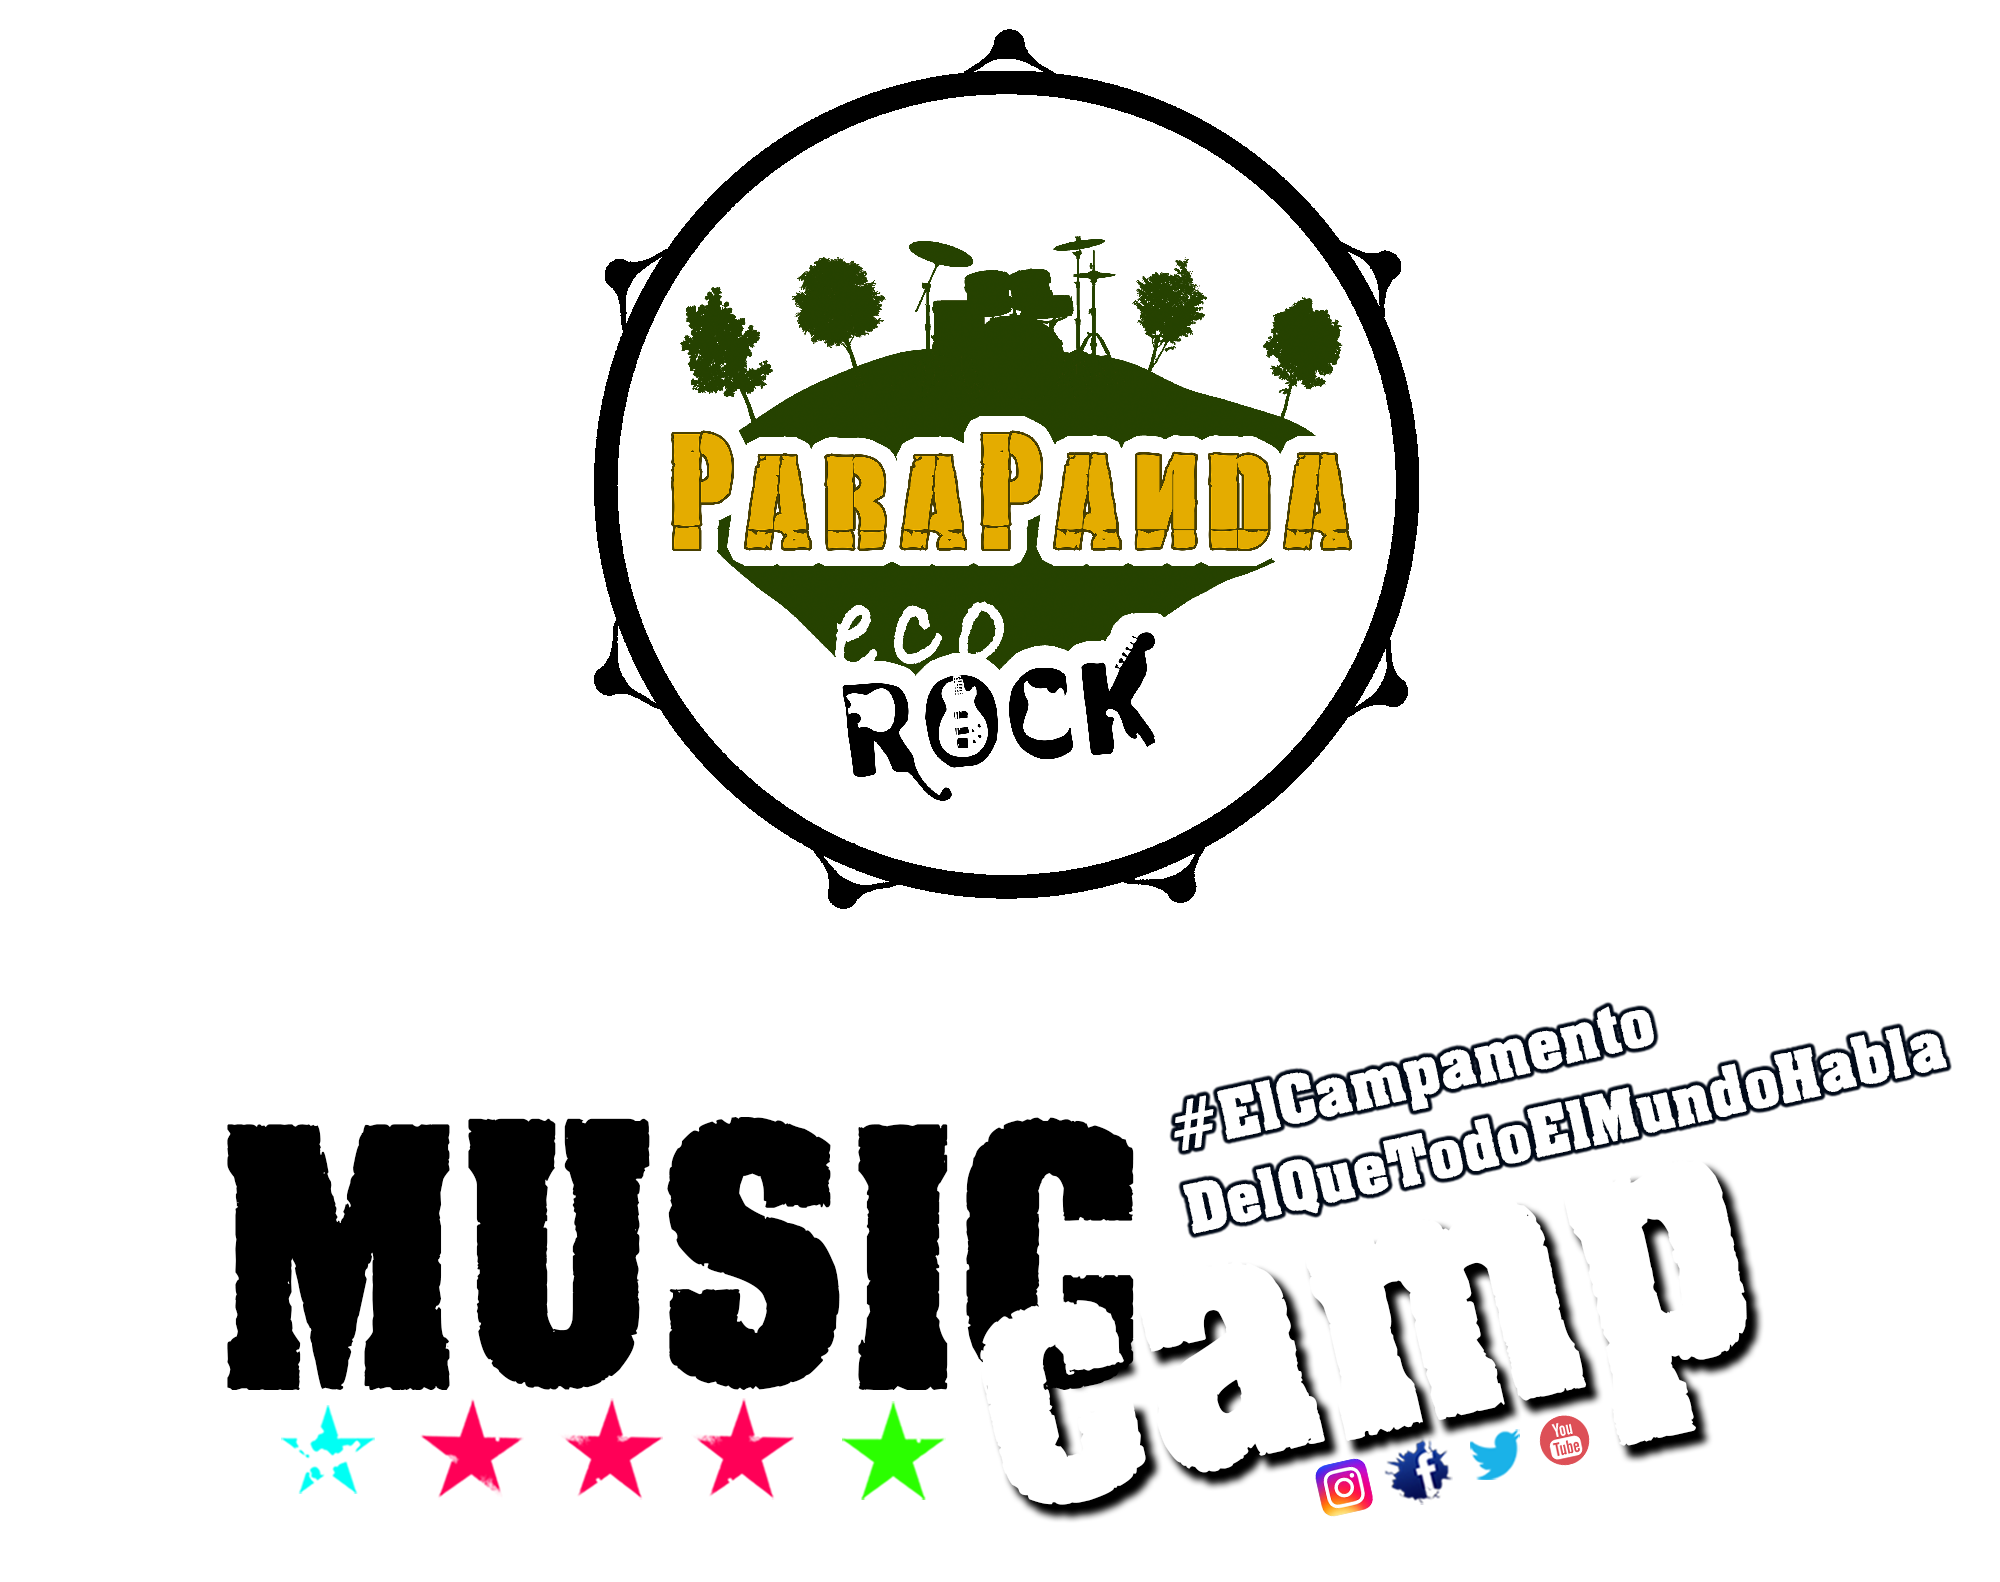 Parapanda eco rock